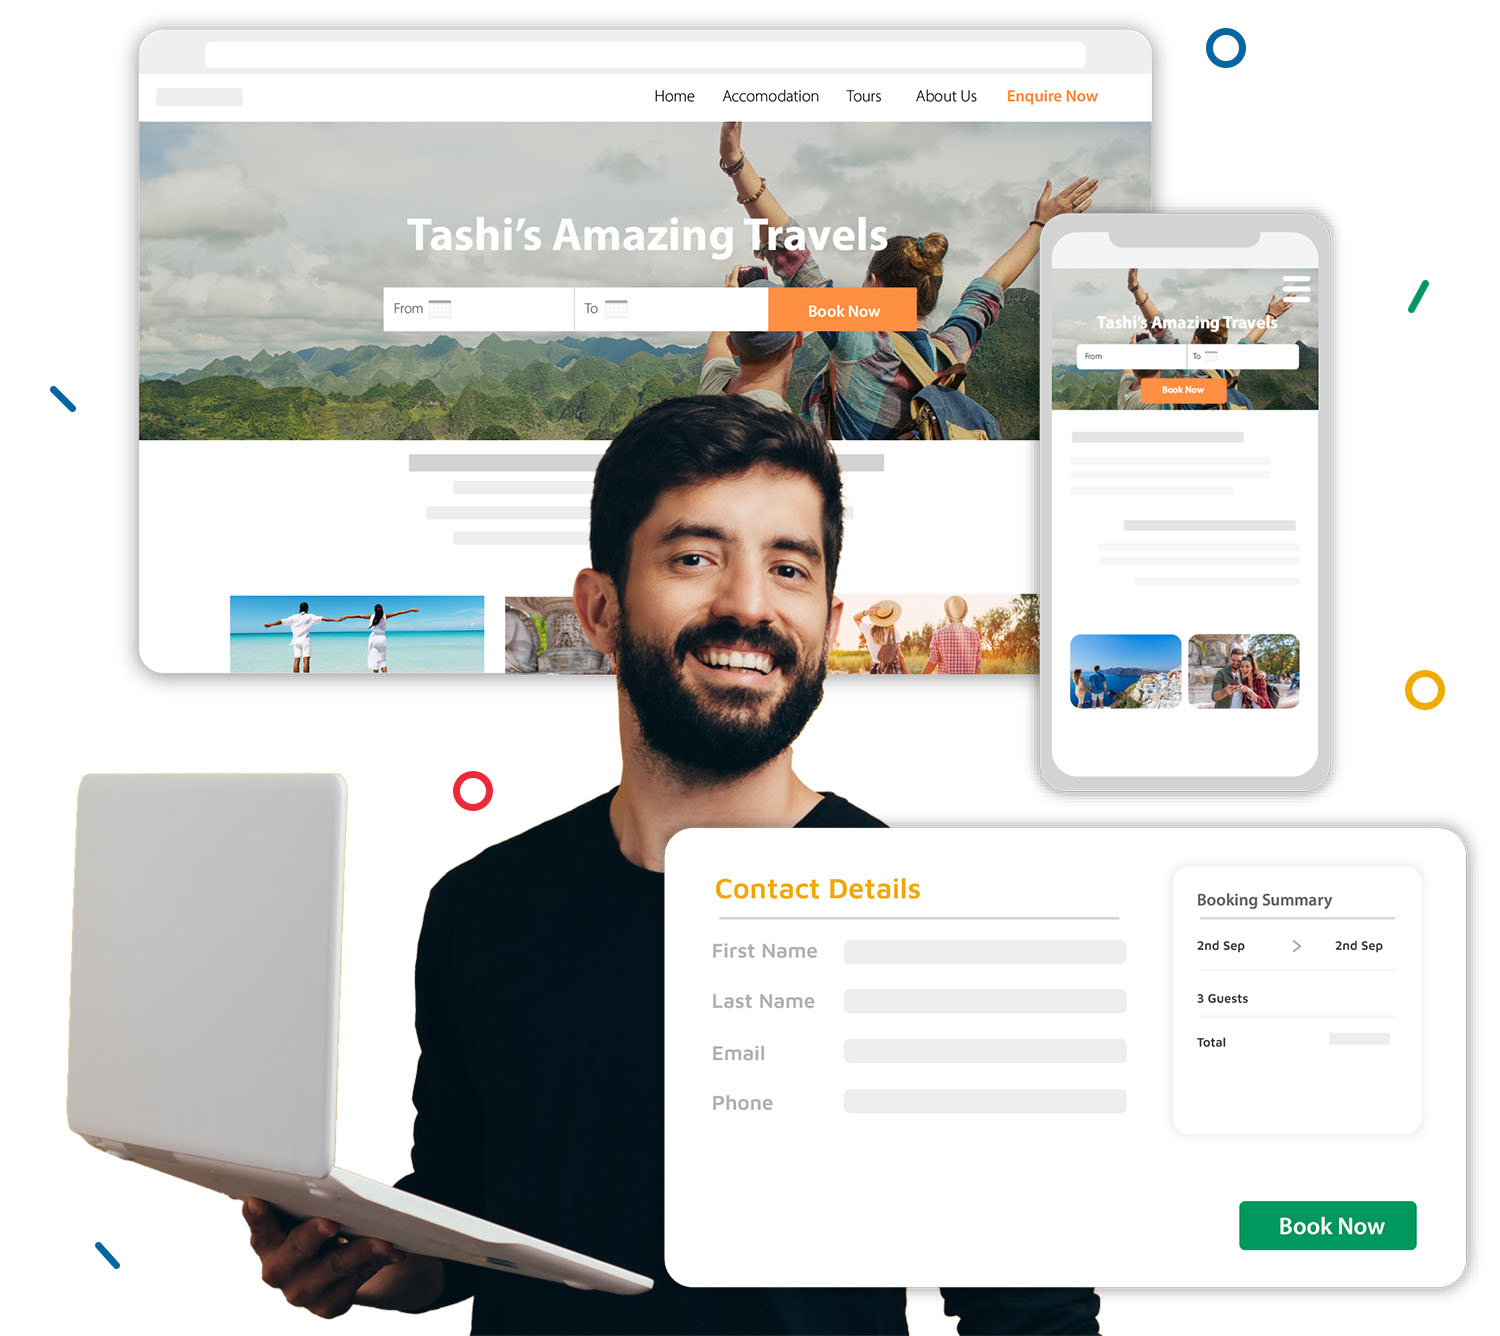 Tashi Website Builder for Tour Operators and Accommodation providers